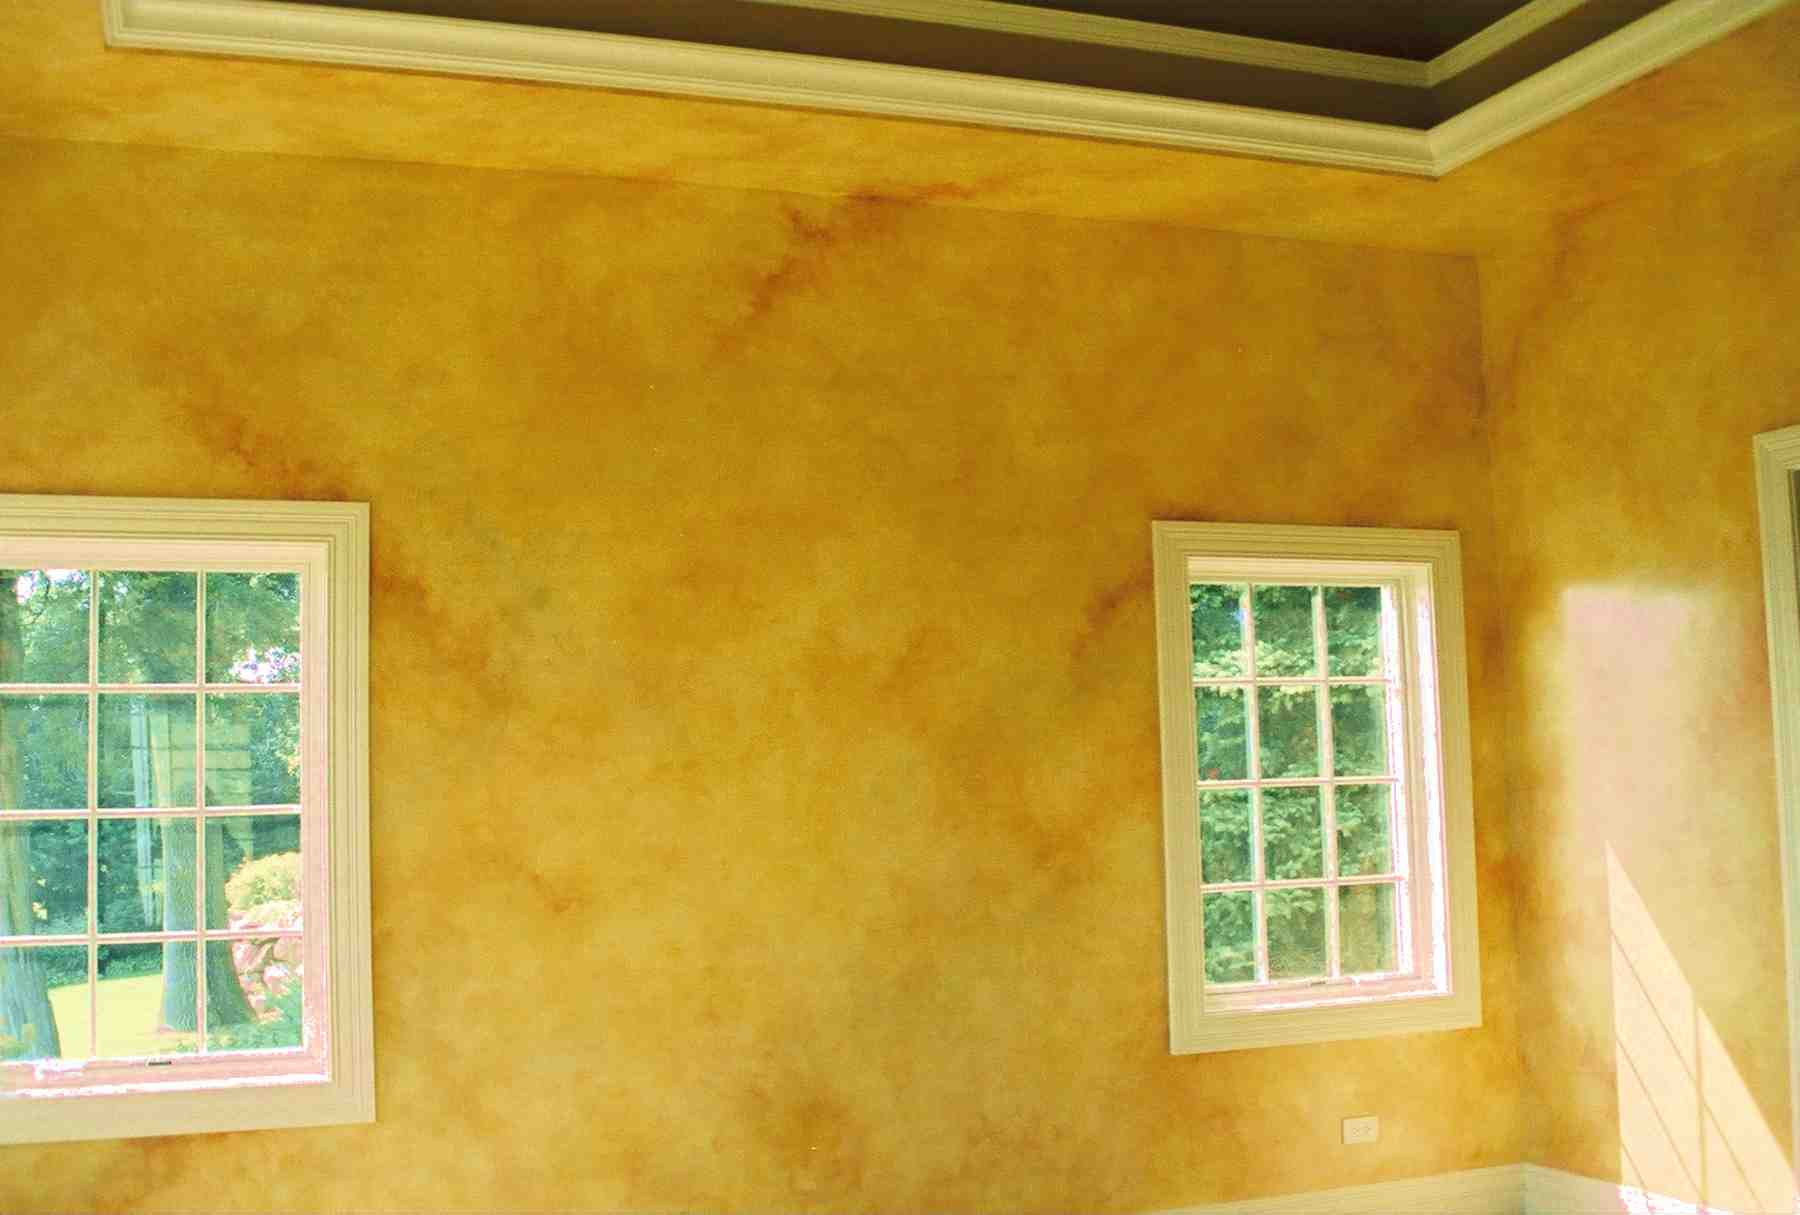 Faux Finishes for Room & Wall Painting Port Aransas TX | Nicole Carol